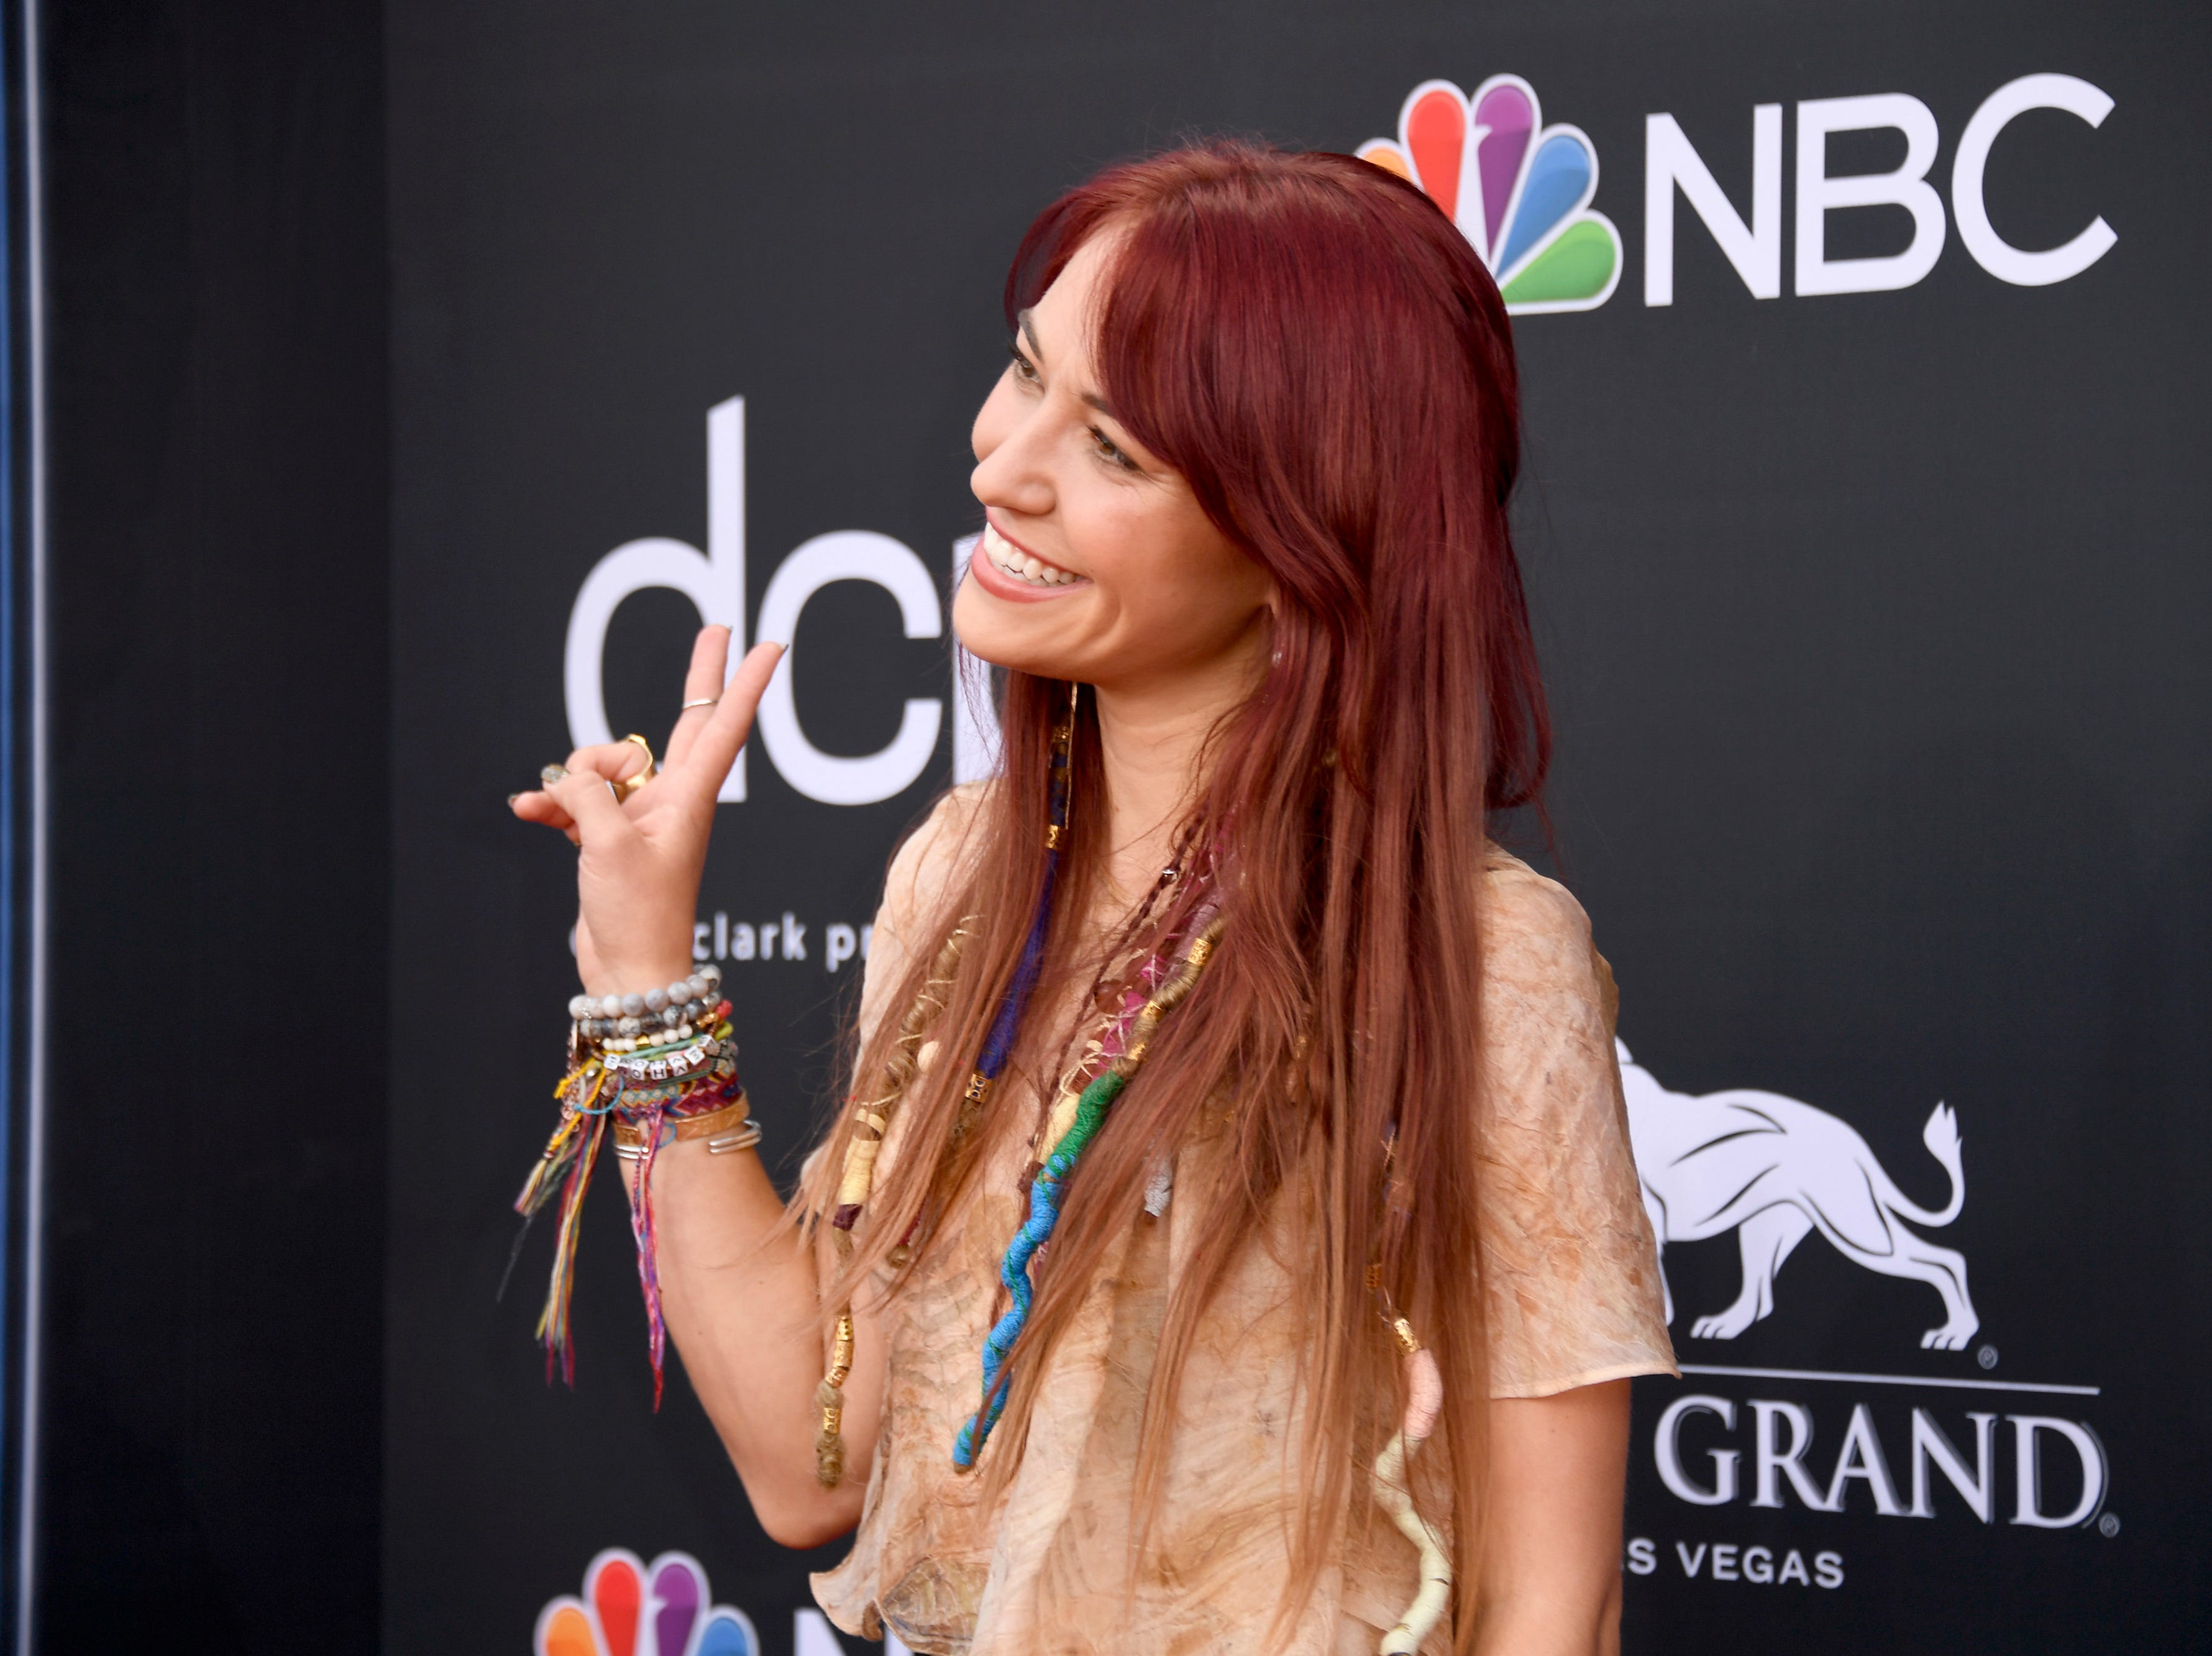 Lauren Daigle attends the 2019 Billboard Music Awards at MGM Grand Garden Arena on May 01, 2019 in Las Vegas, Nevada.